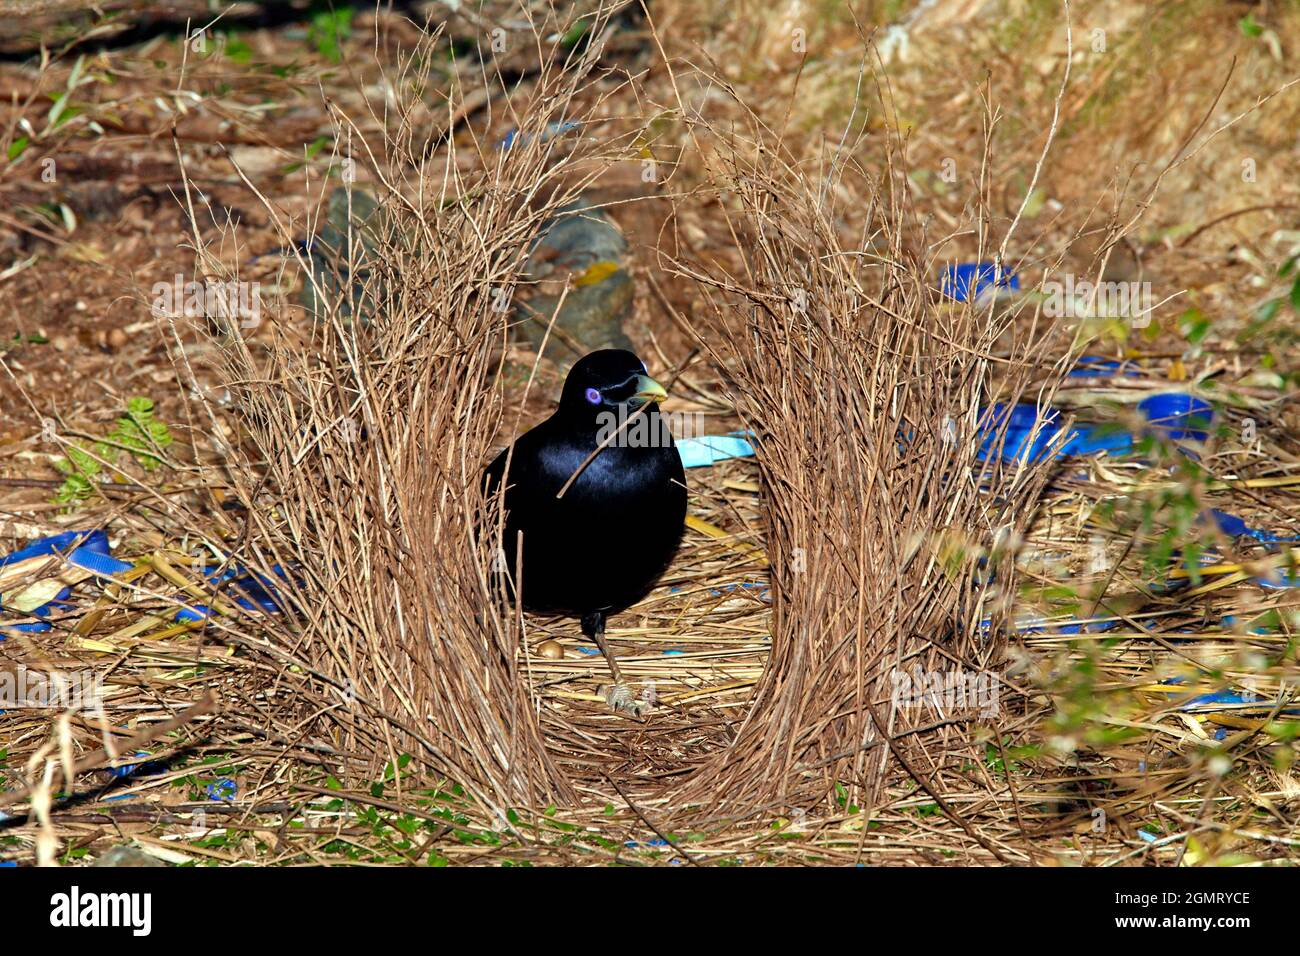 male-satin-bowerbird-ptilonorhynchus-violaceus-building-his-bower-these-birds-use-a-bower-made-of-sticks-decorated-with-blue-and-yellow-objects-2GMRYCE.jpg